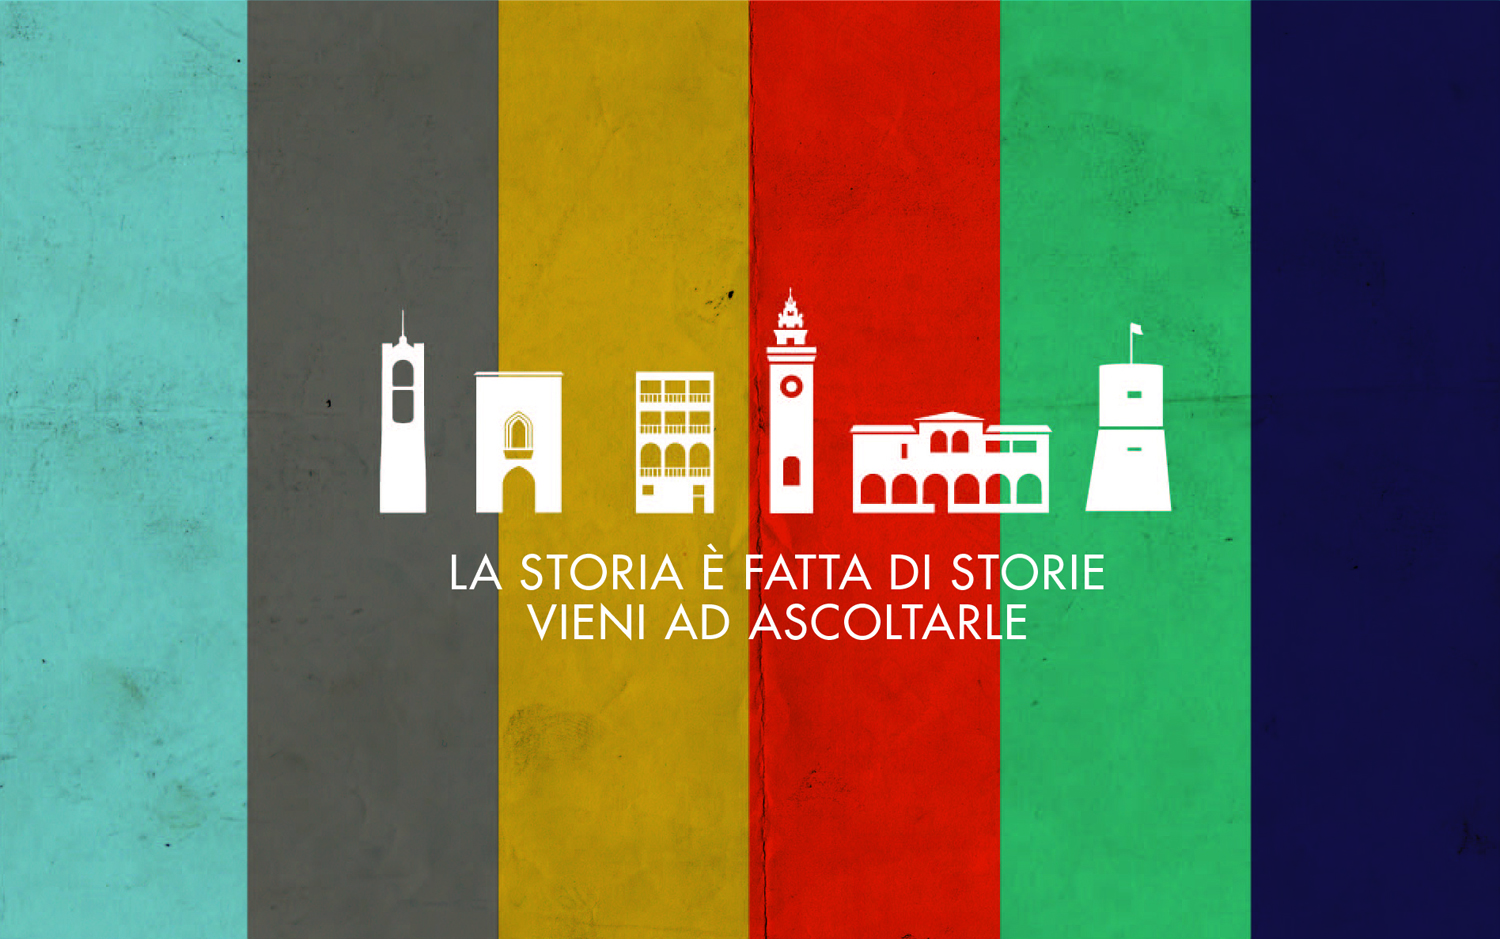 Museo delle storie OneDay!